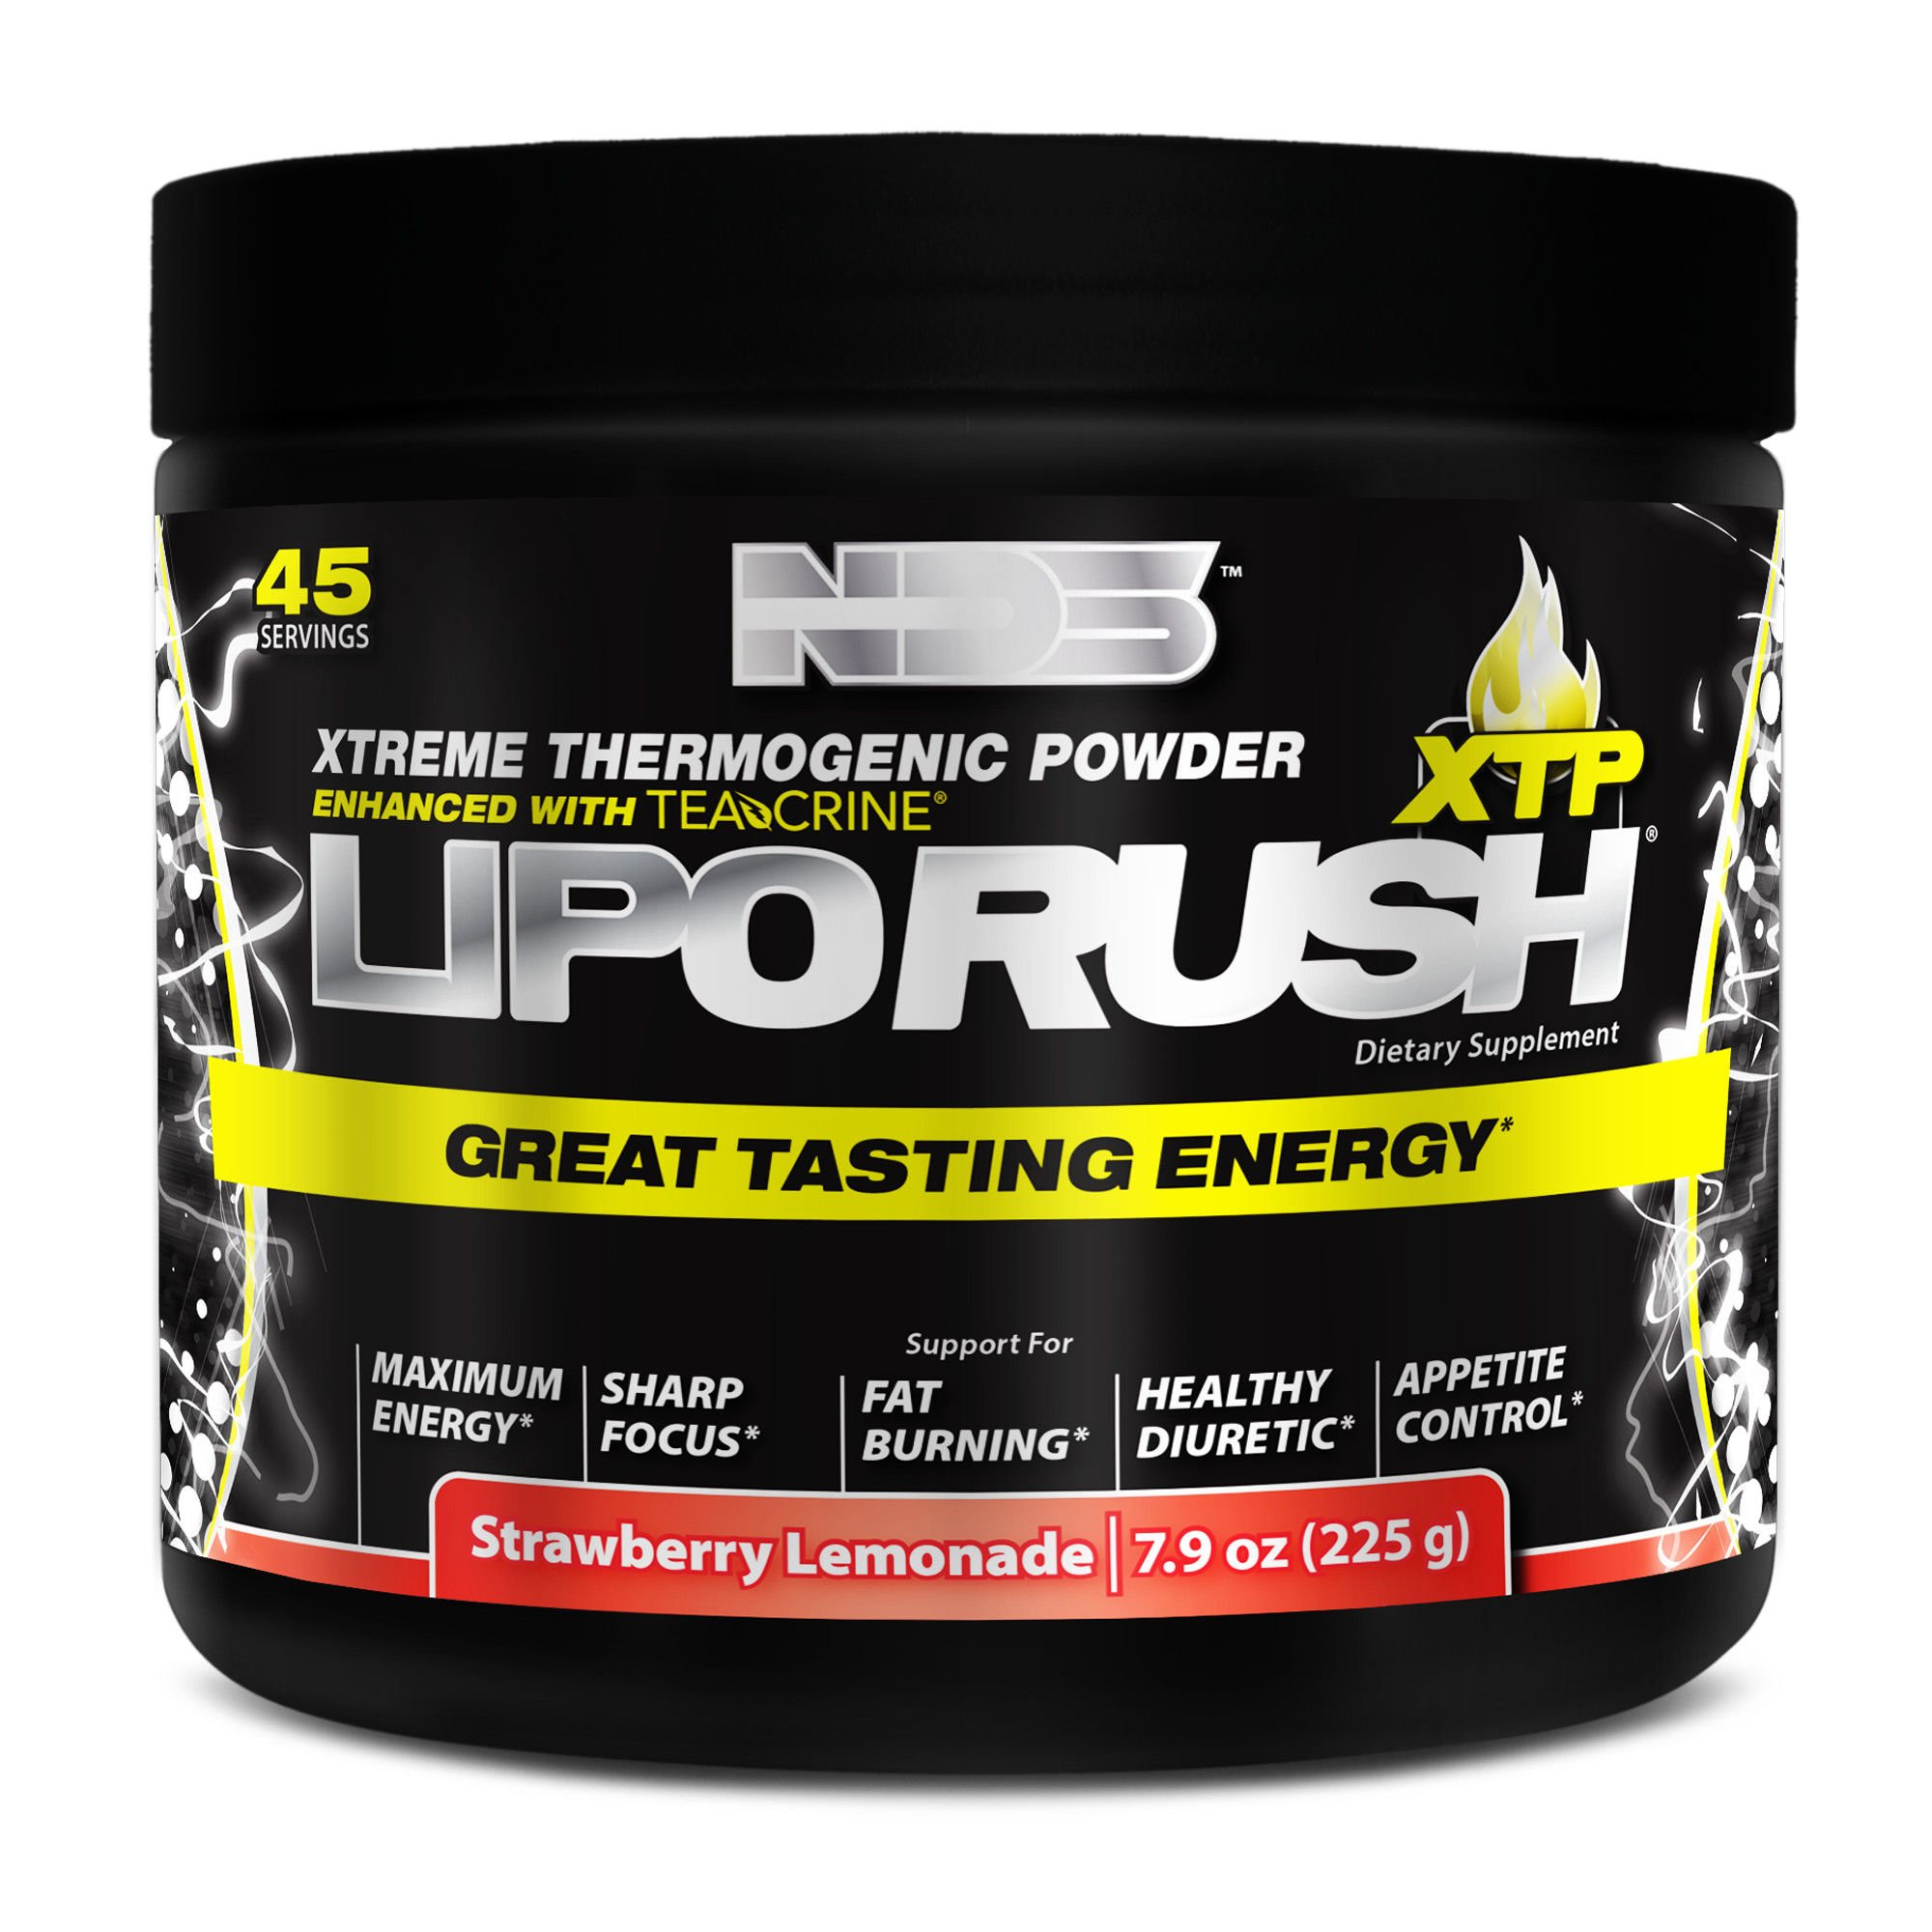 NDS Nutrition LipoRush XTP - Extreme Thermogenic Fat Burning Powder Enchanced with L-Carnitine and Teacrine - Maximum Energy, Sharp Focus, Appetite Control - Strawberry Lemonade - 45 Servings ...